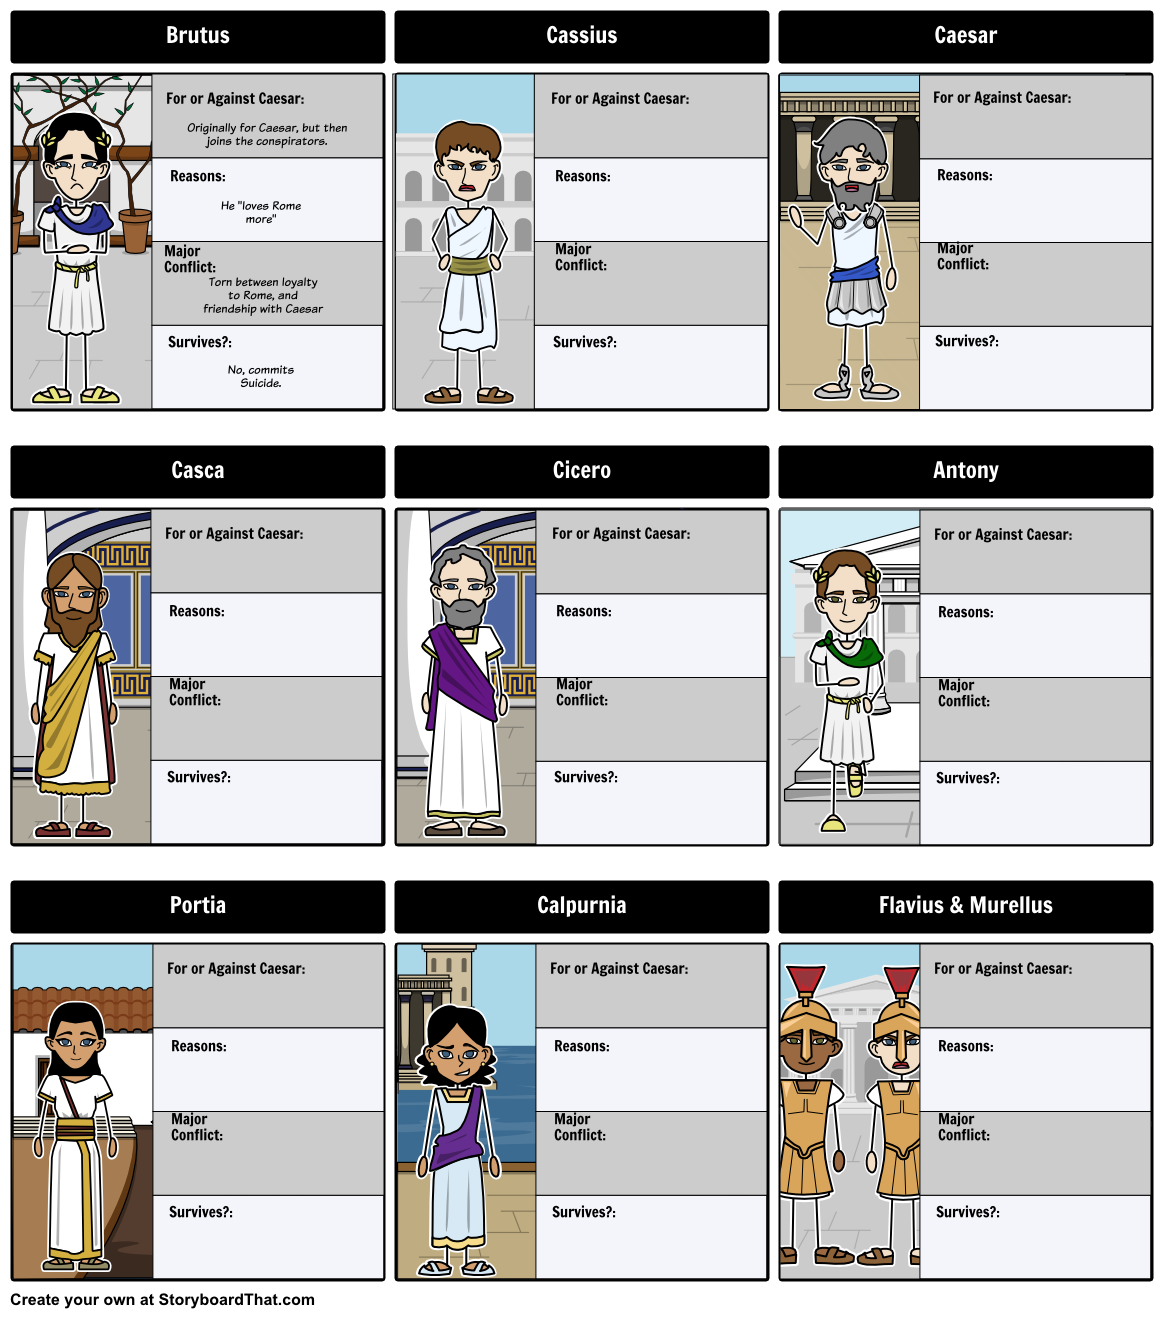 The tragedy of julius caesar character map lets create a the tragedy of julius caesar character map lets create a character map for the biocorpaavc